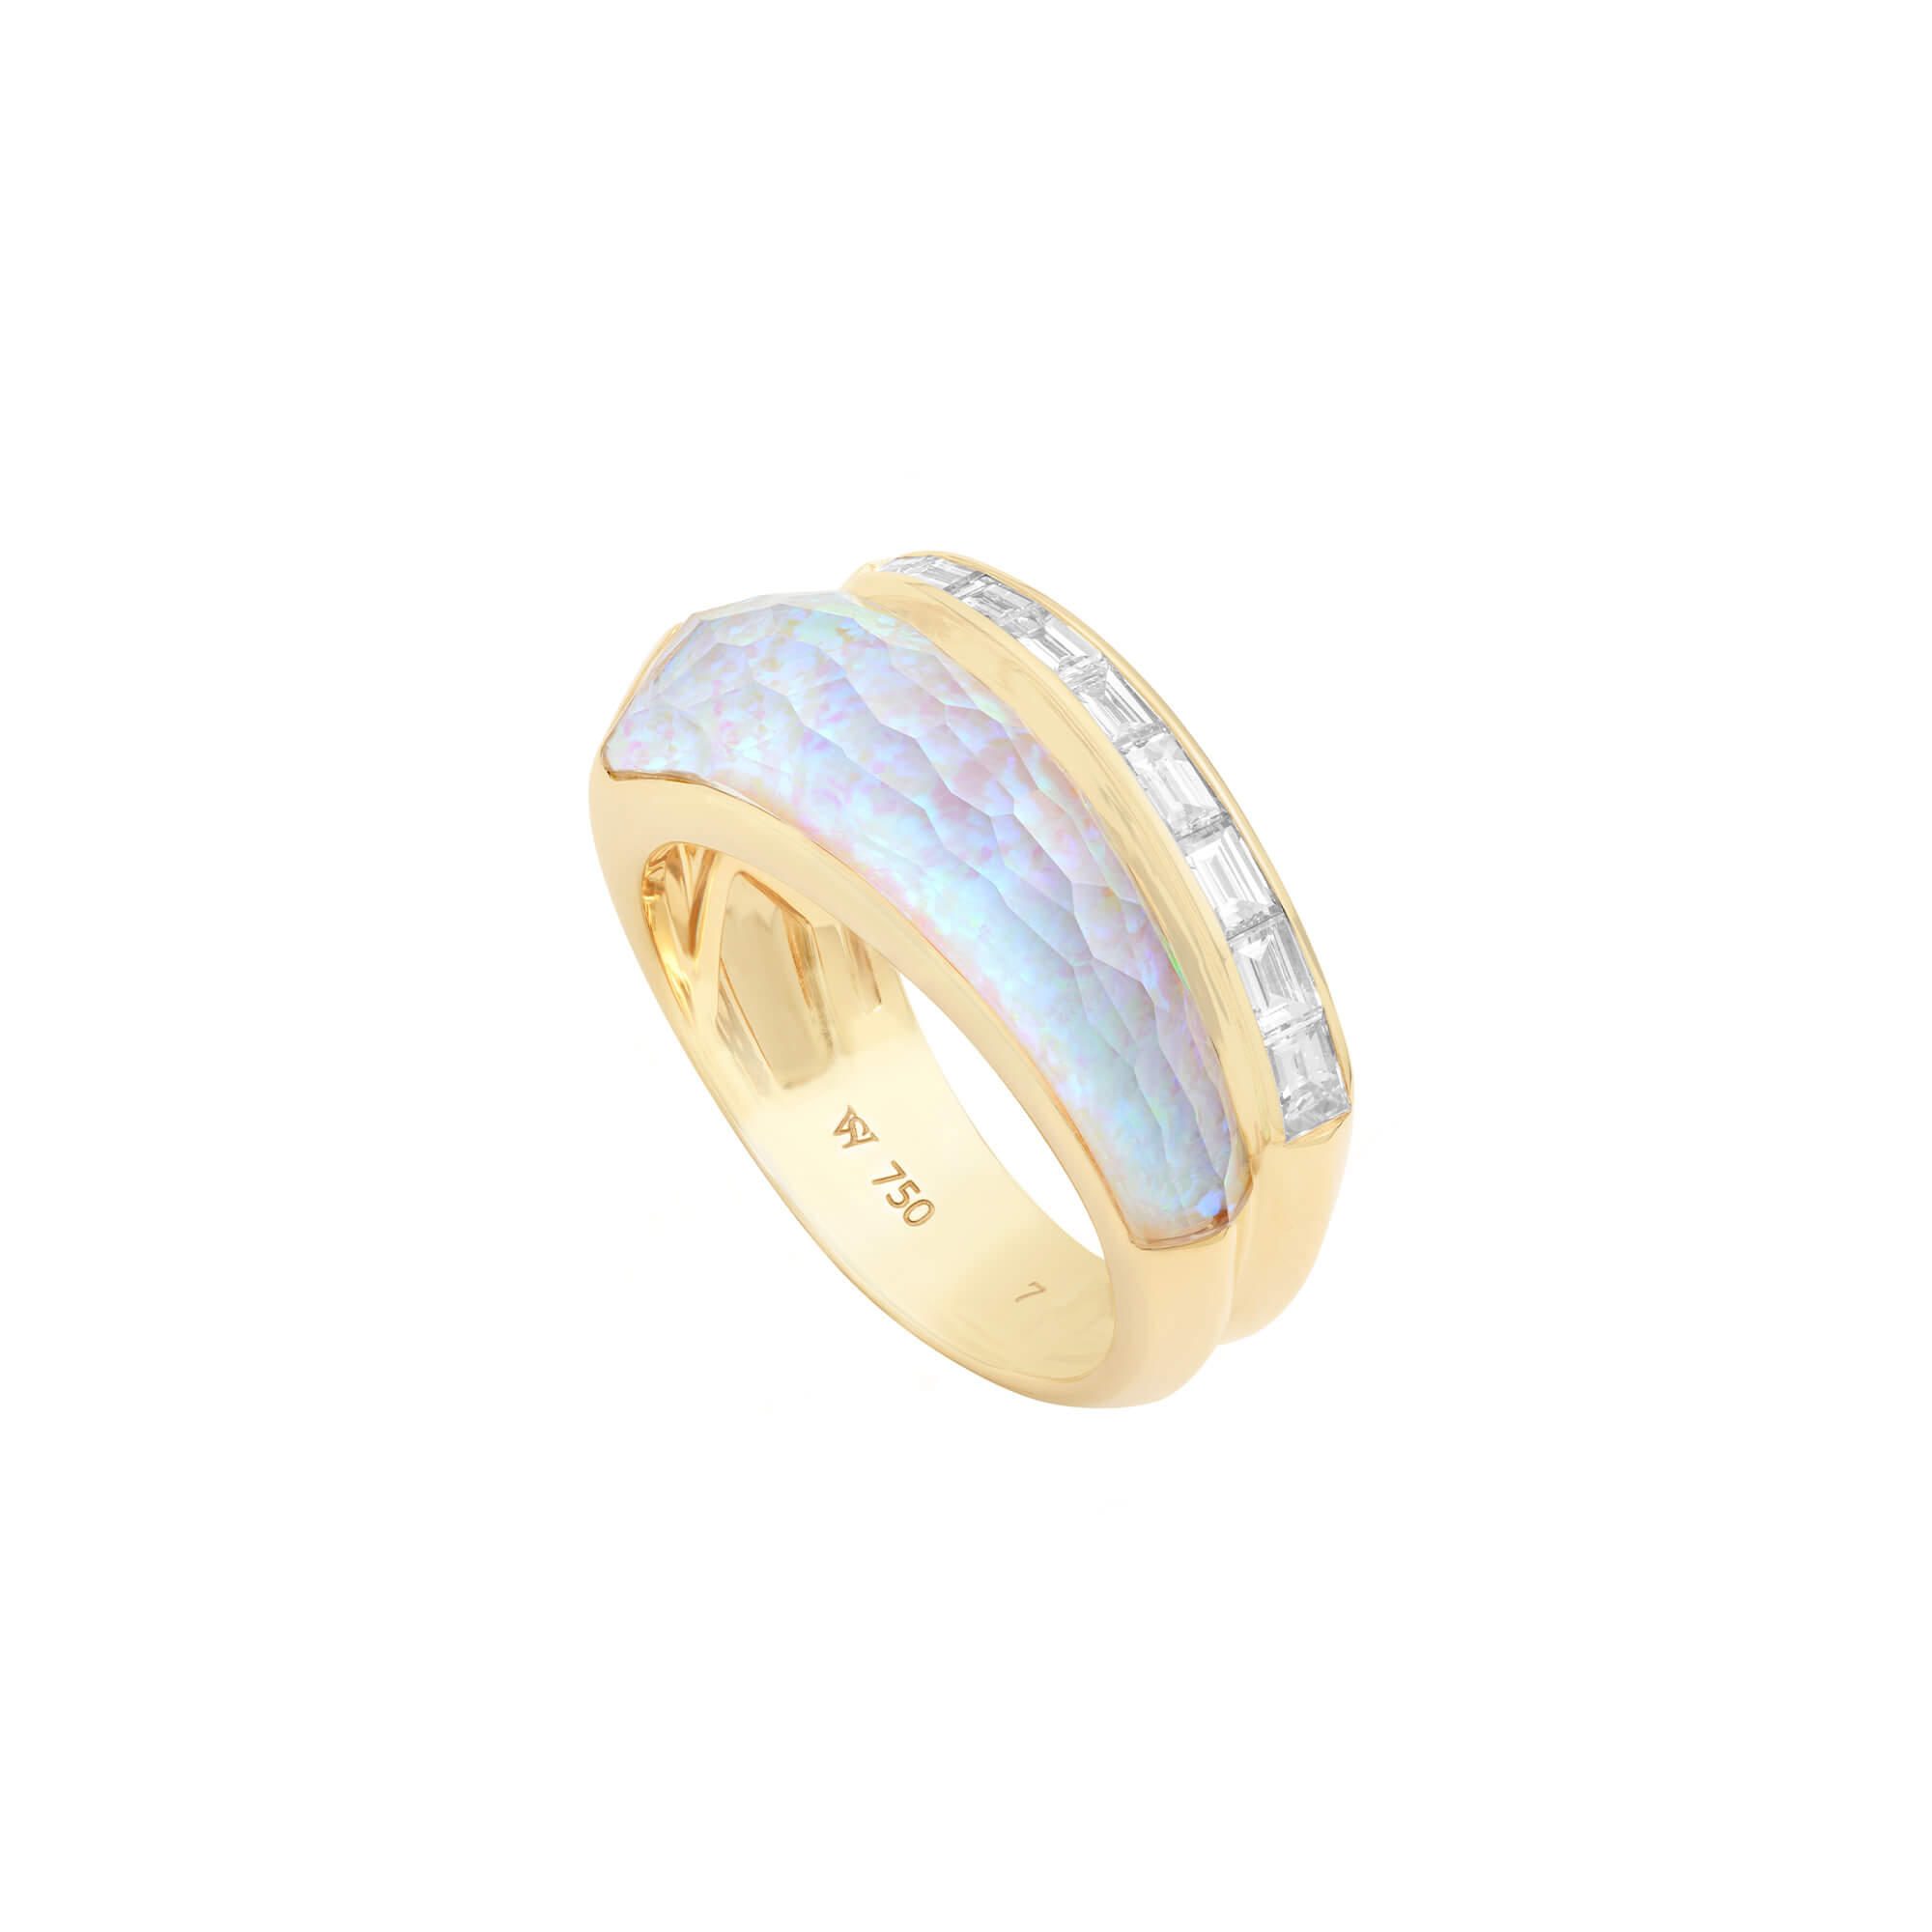 White Opalescent Crystal Haze Slimline Ring | CH₂